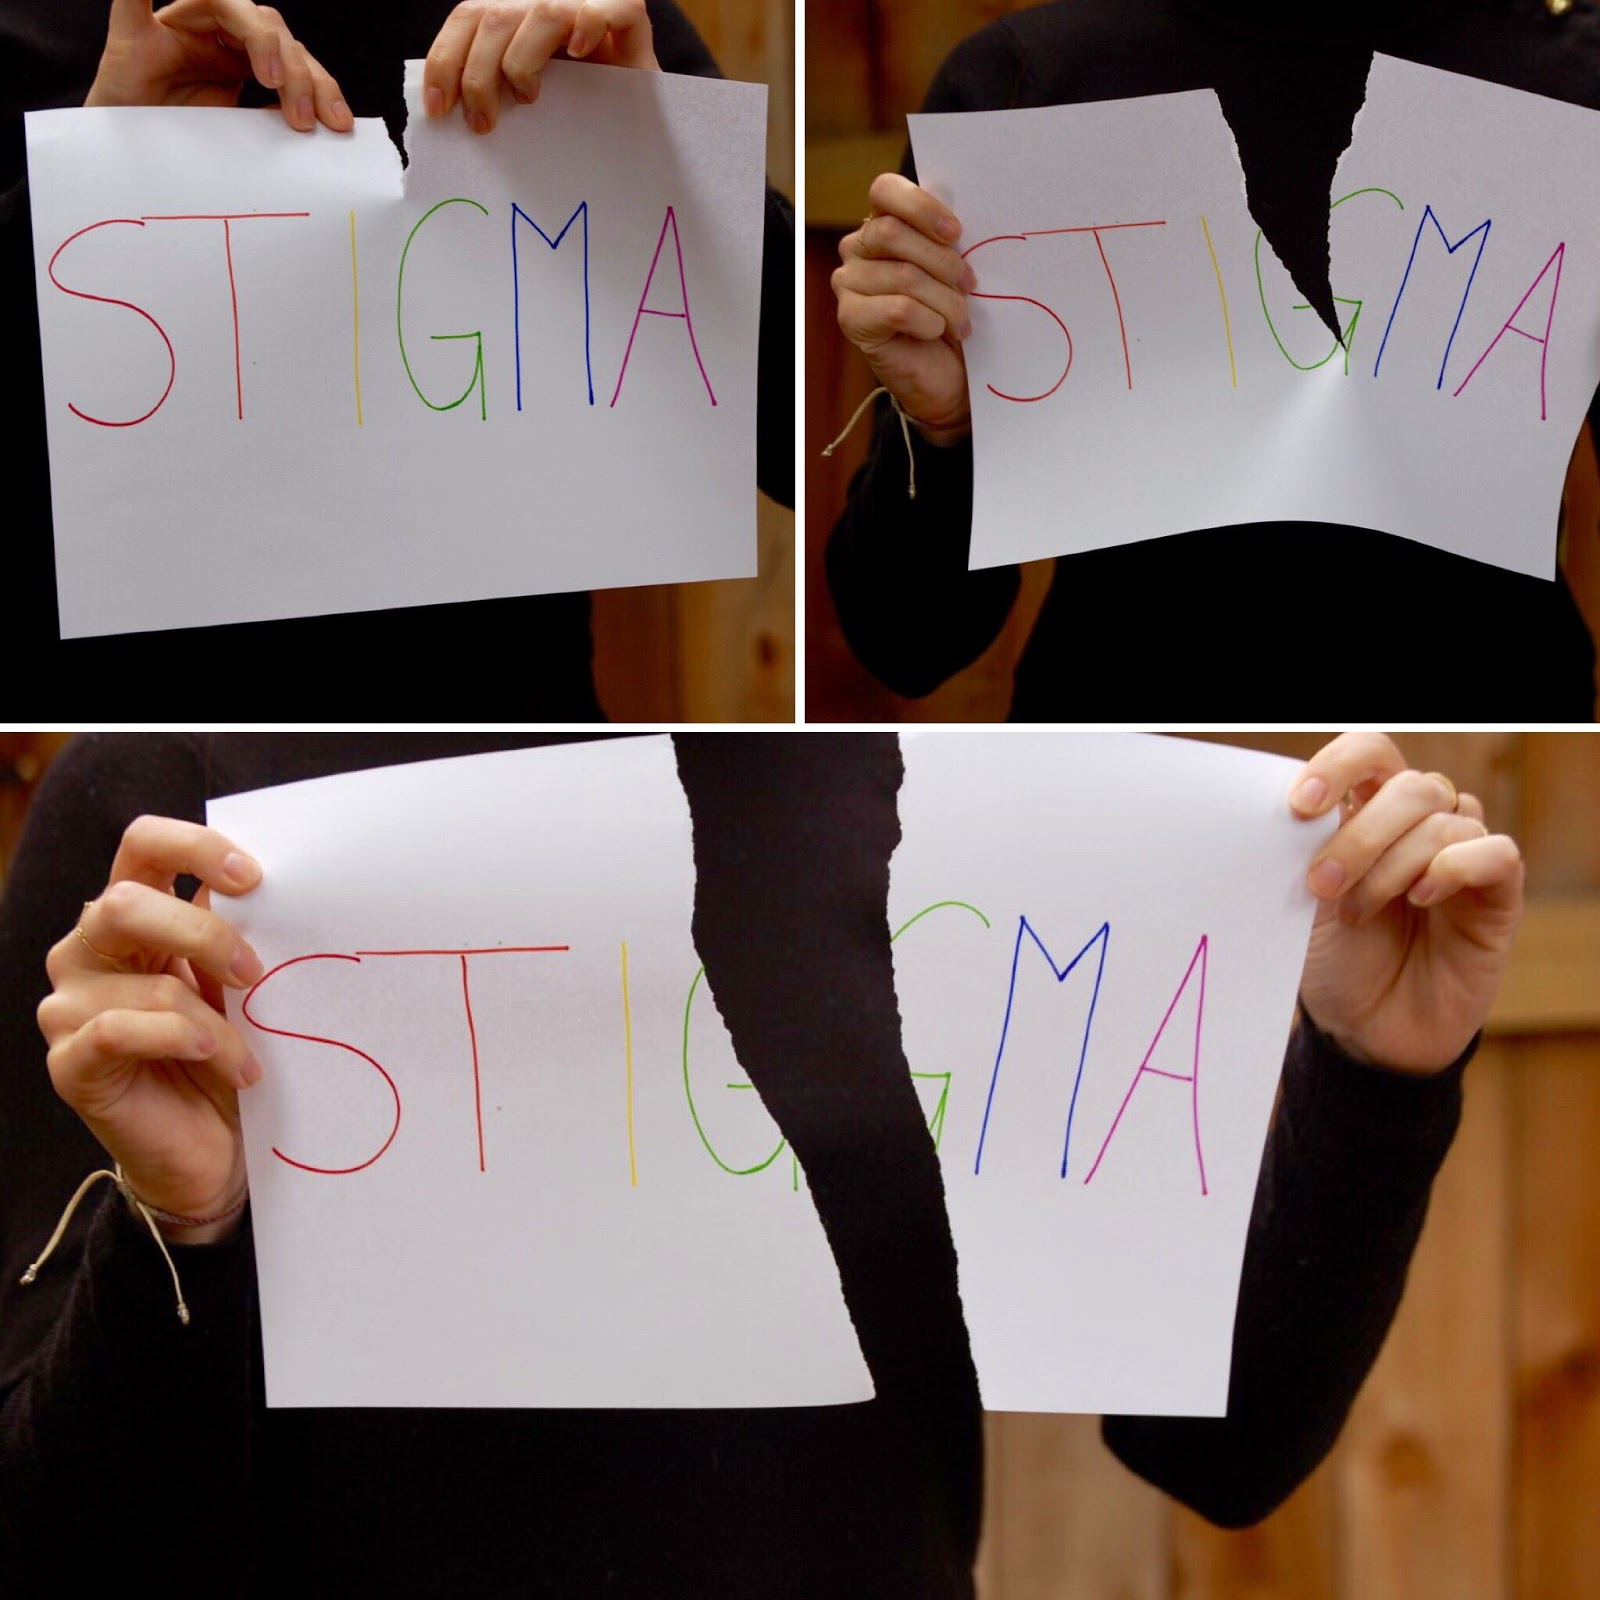 Caption: Stigma will tear us apart if we let it. Say #SoLongStigma with Seleni Institute.